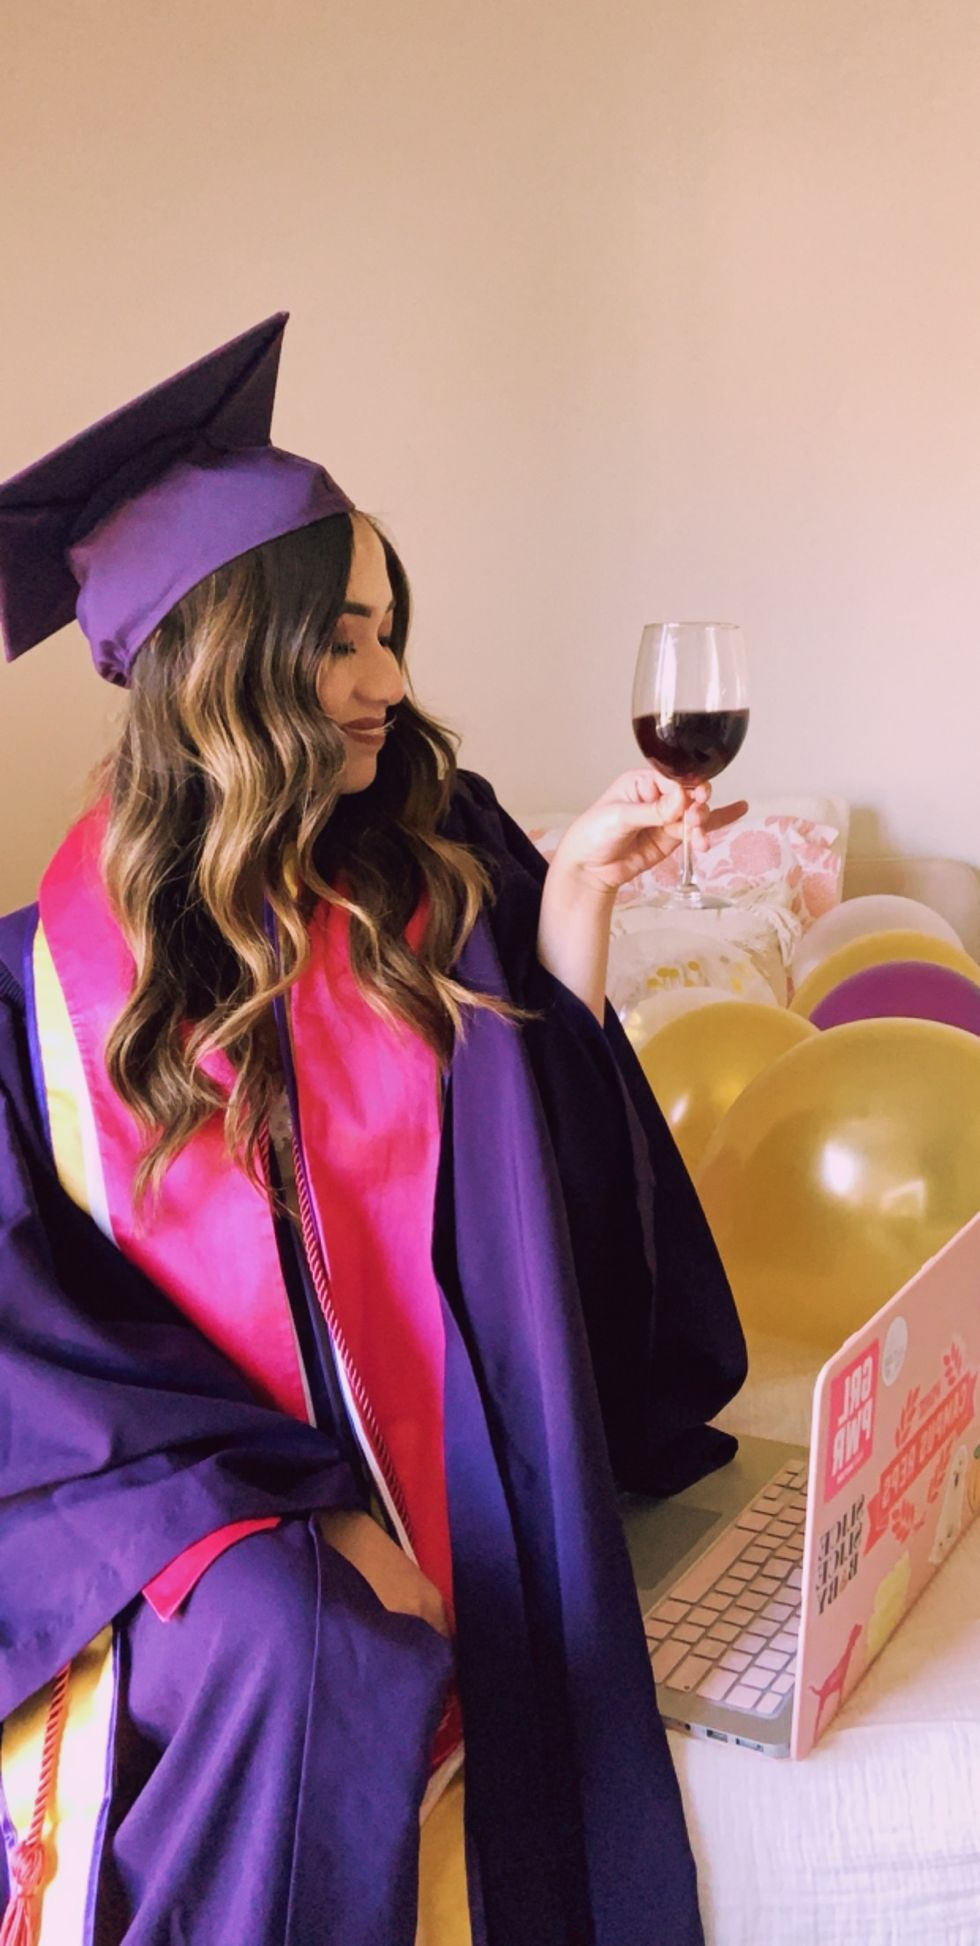 I Watched My College Commencement on FaceTime: The Highs and Lows of Graduating During a Global Pandemic